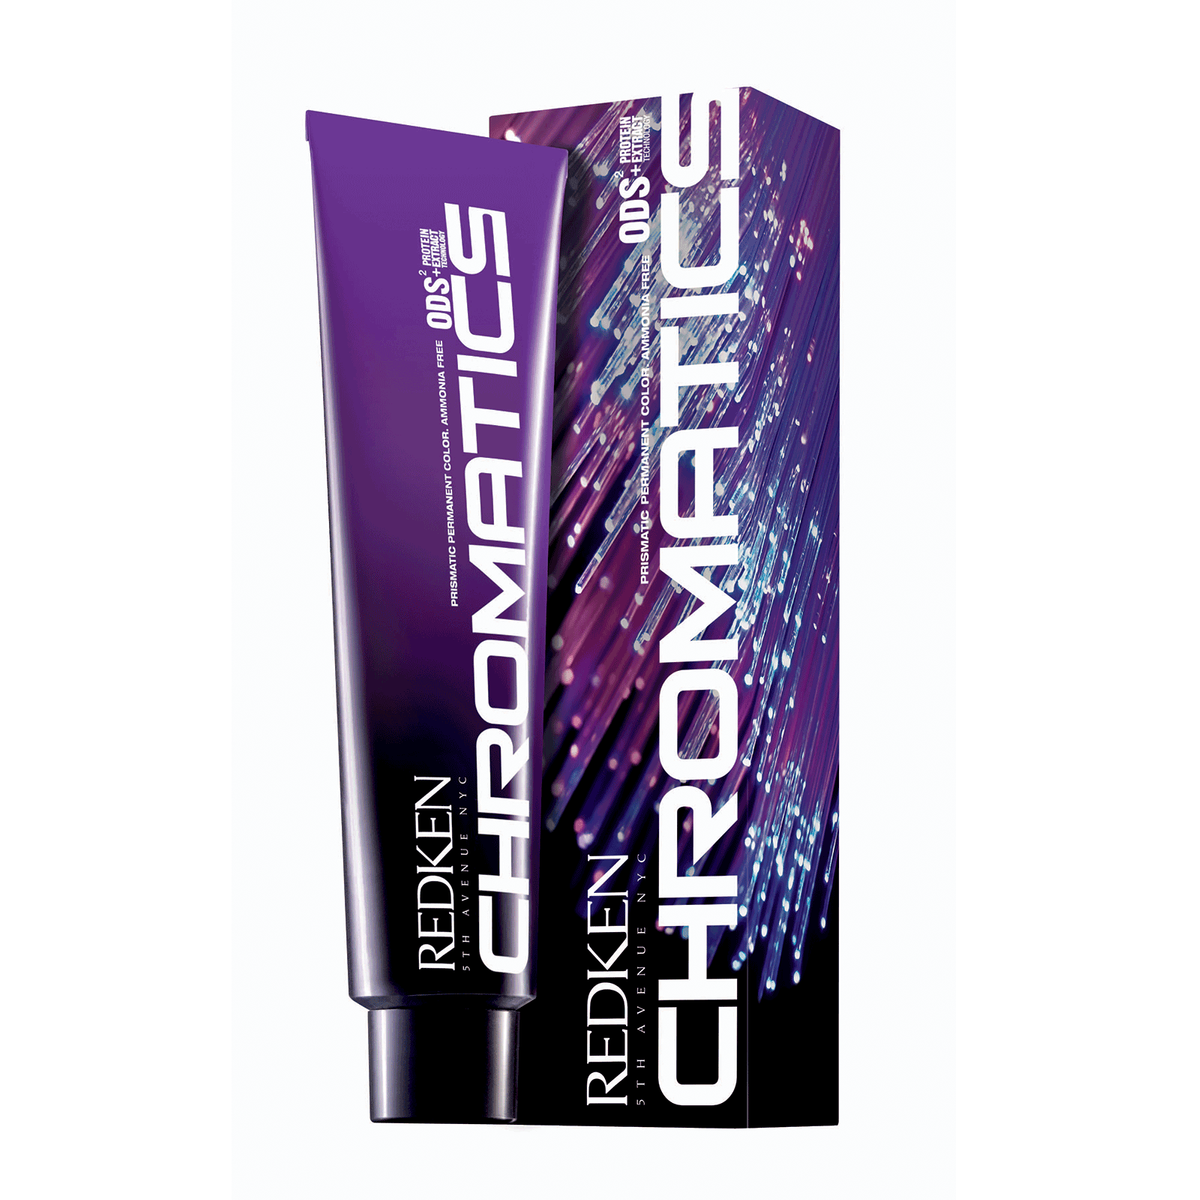 Redken Chromatics - Product Naming Process